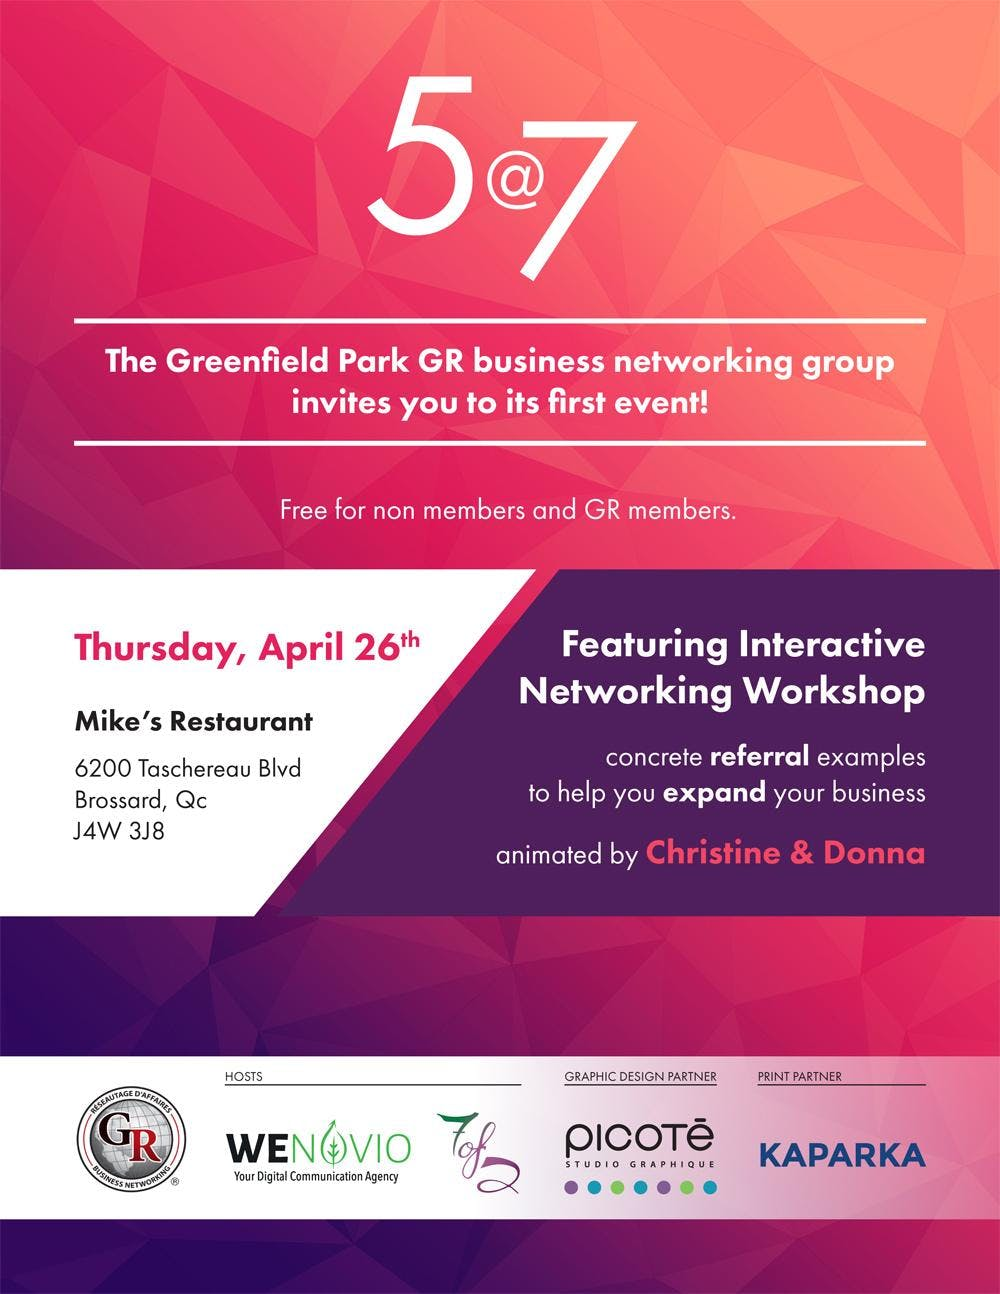 The Greenfield Park GR Business Networking 57